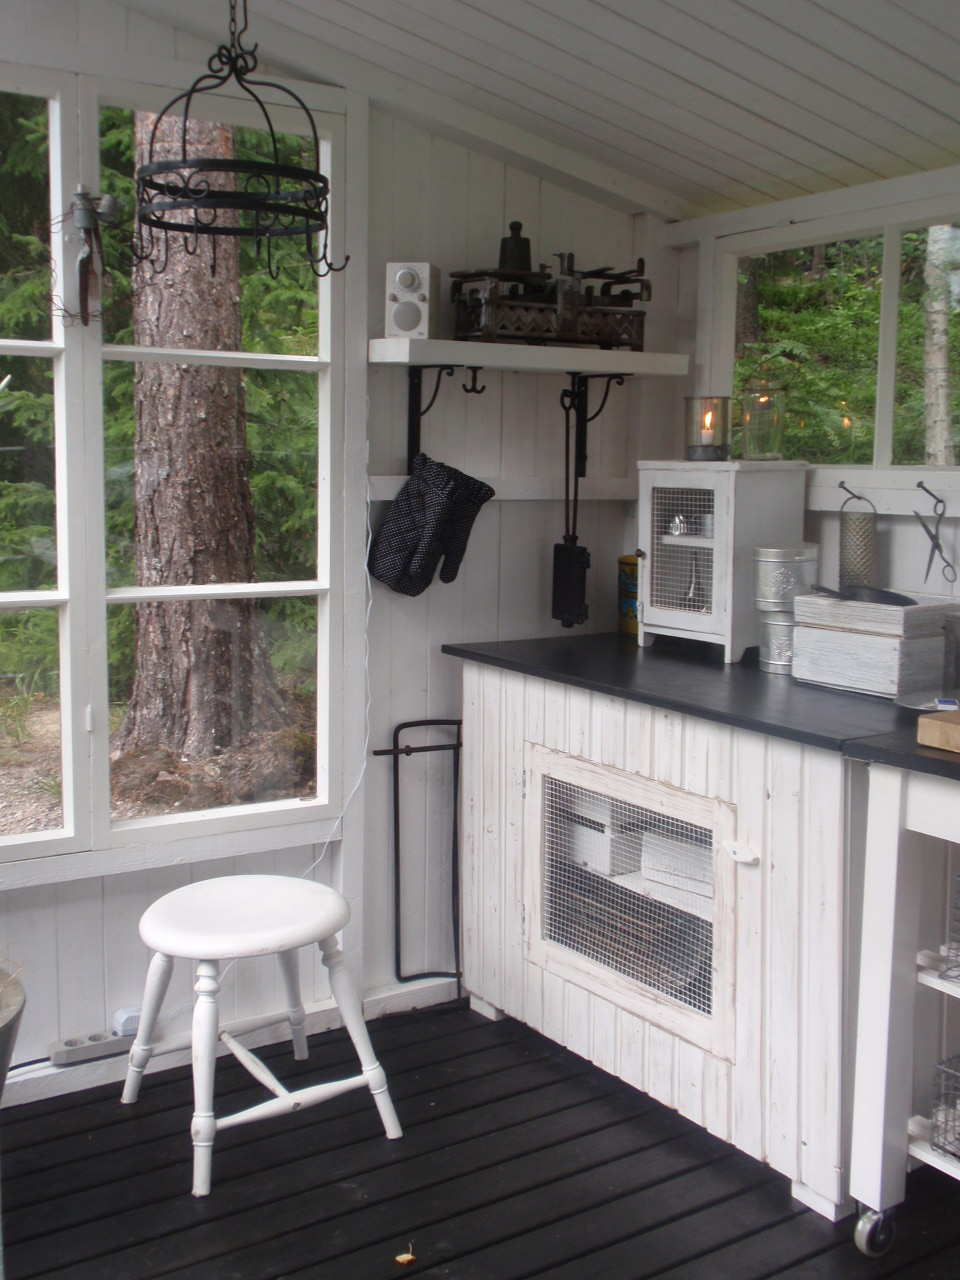 Kesäkeittiö on Pinterest  Summer Kitchen, Outdoor Kitchens and Rustic Outdoo